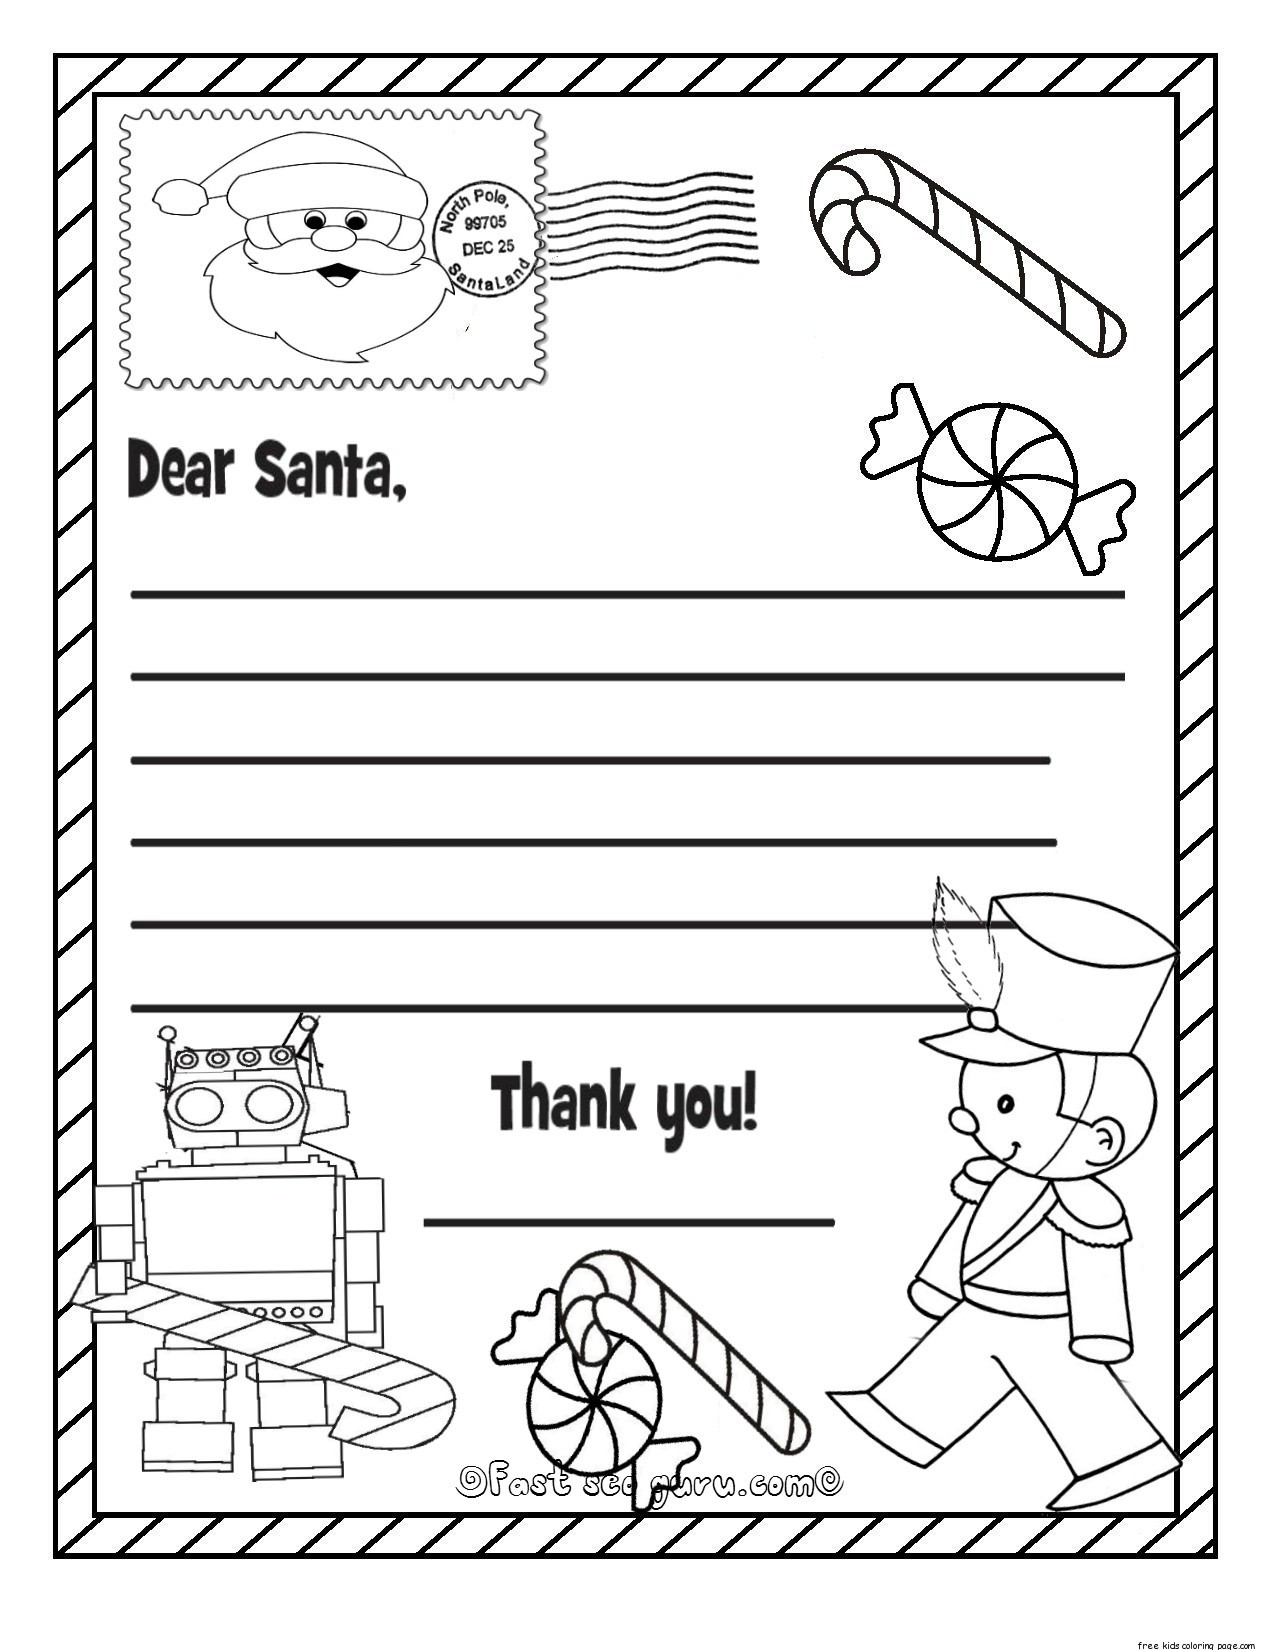 Printable Christmas List Coloring | World Of Example in Printable Christmas List Black And White 24303